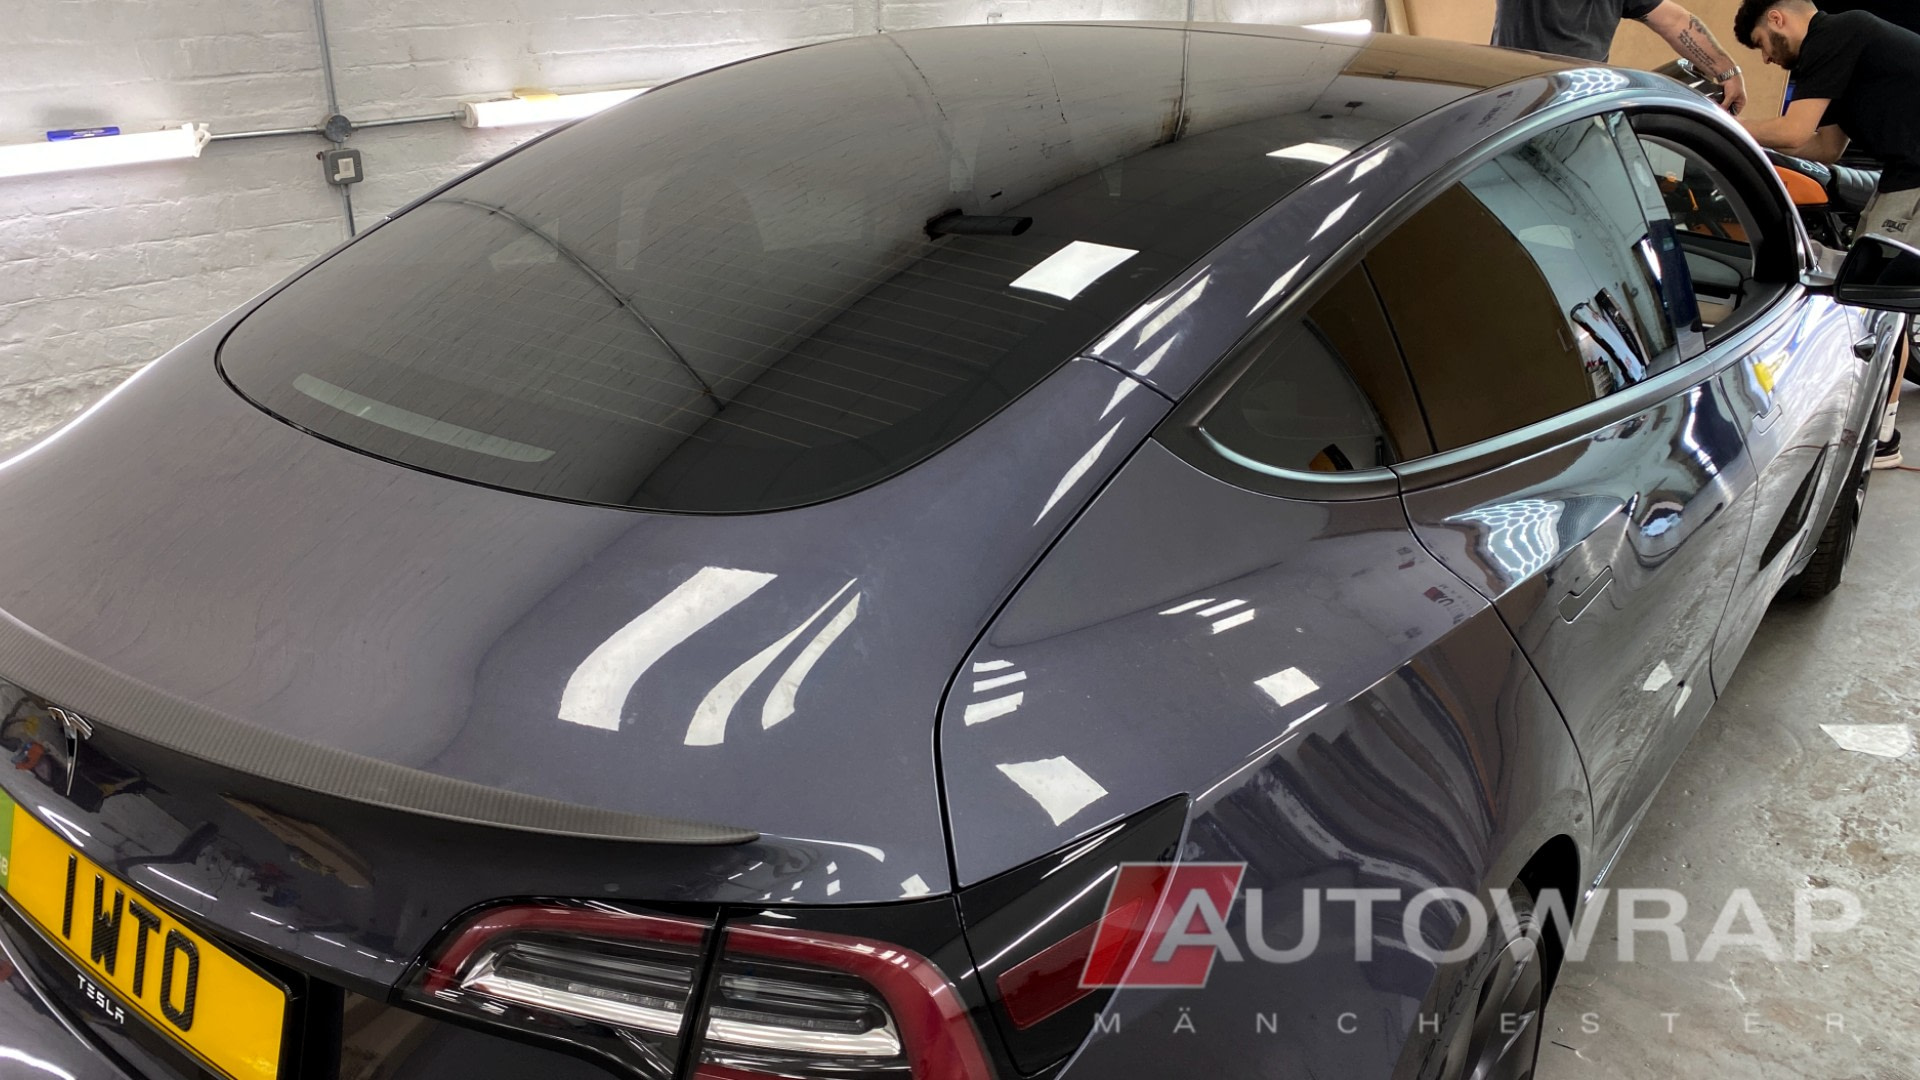 A rear half tint on a tesla model 3. On this car, the rear window comes right over the top of the car in a panoramic roof style.